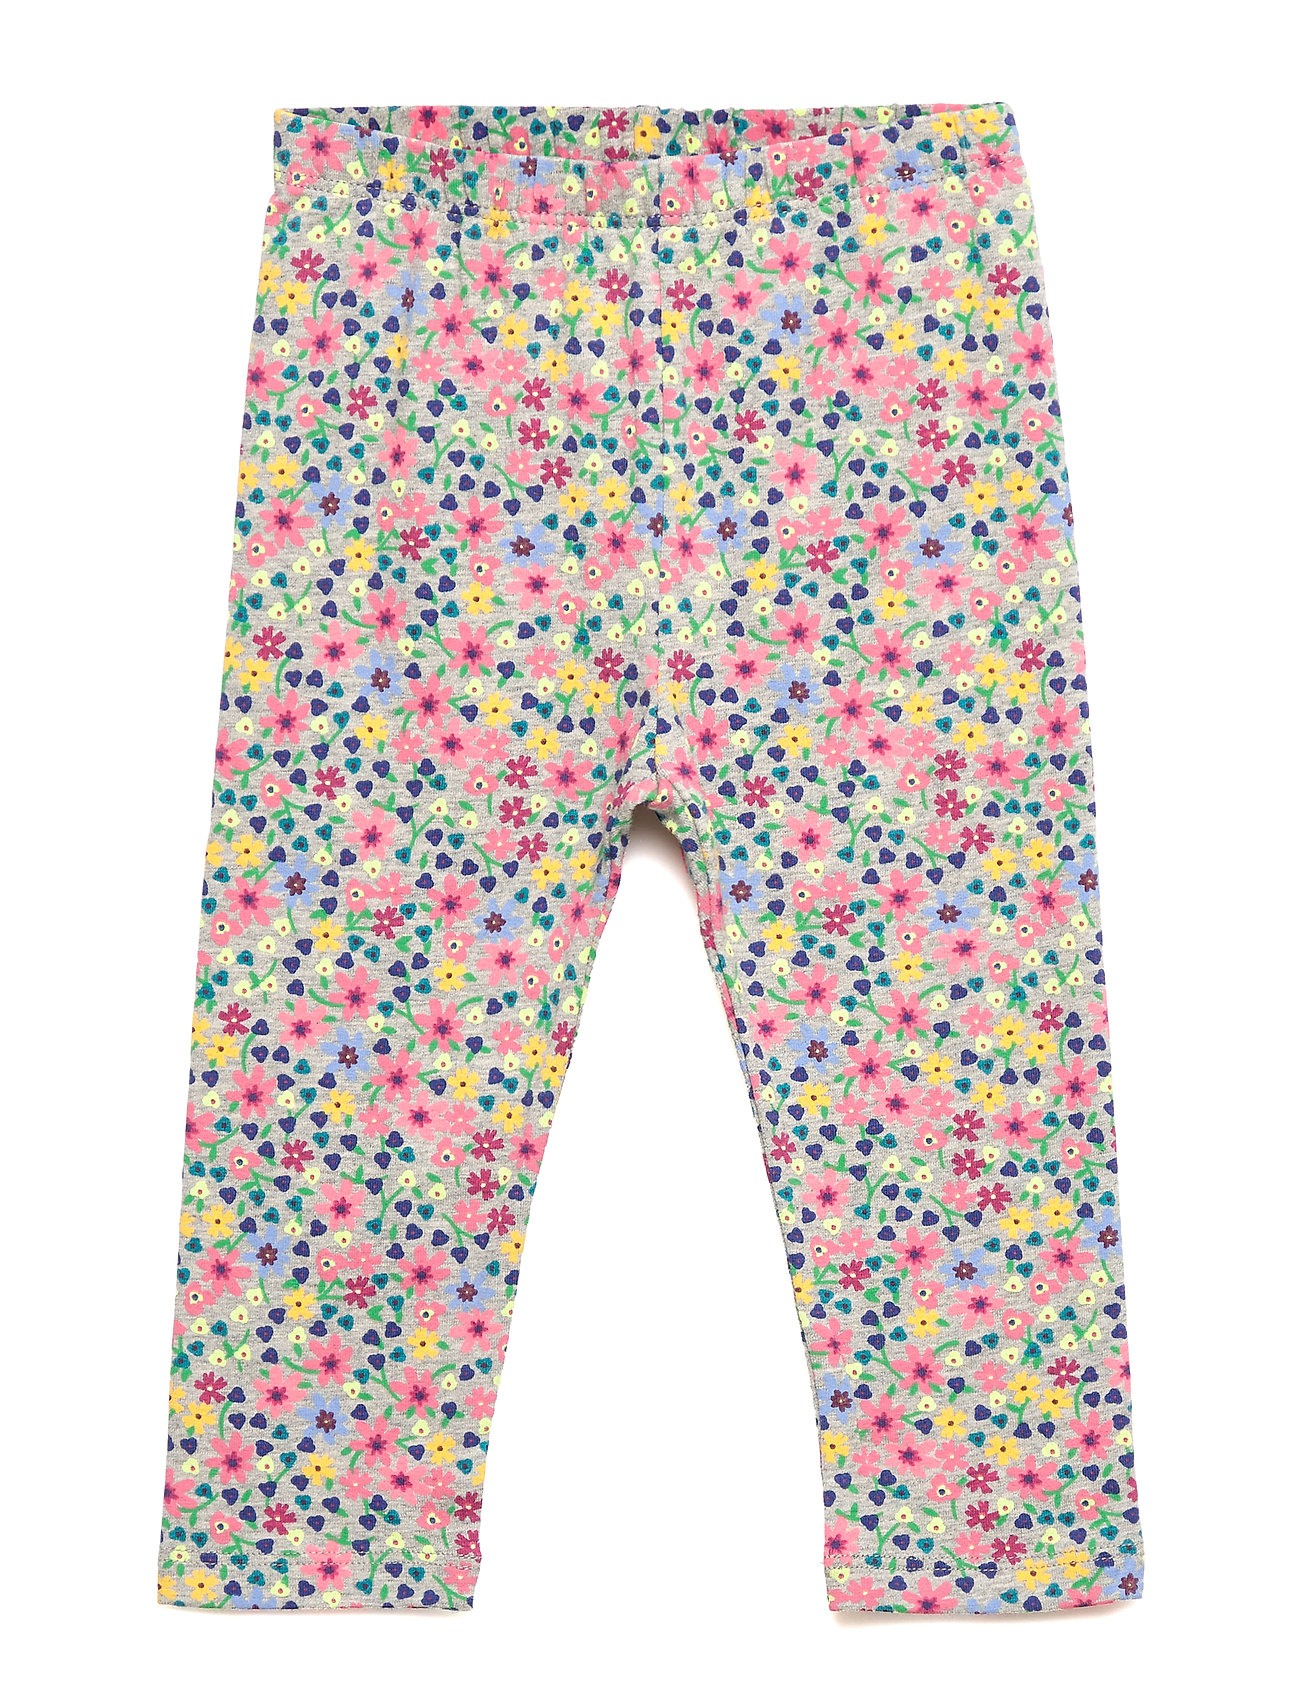 Image of Baby Print Leggings In Stretch Jersey Bukser Multi/mønstret GAP (3230588093)